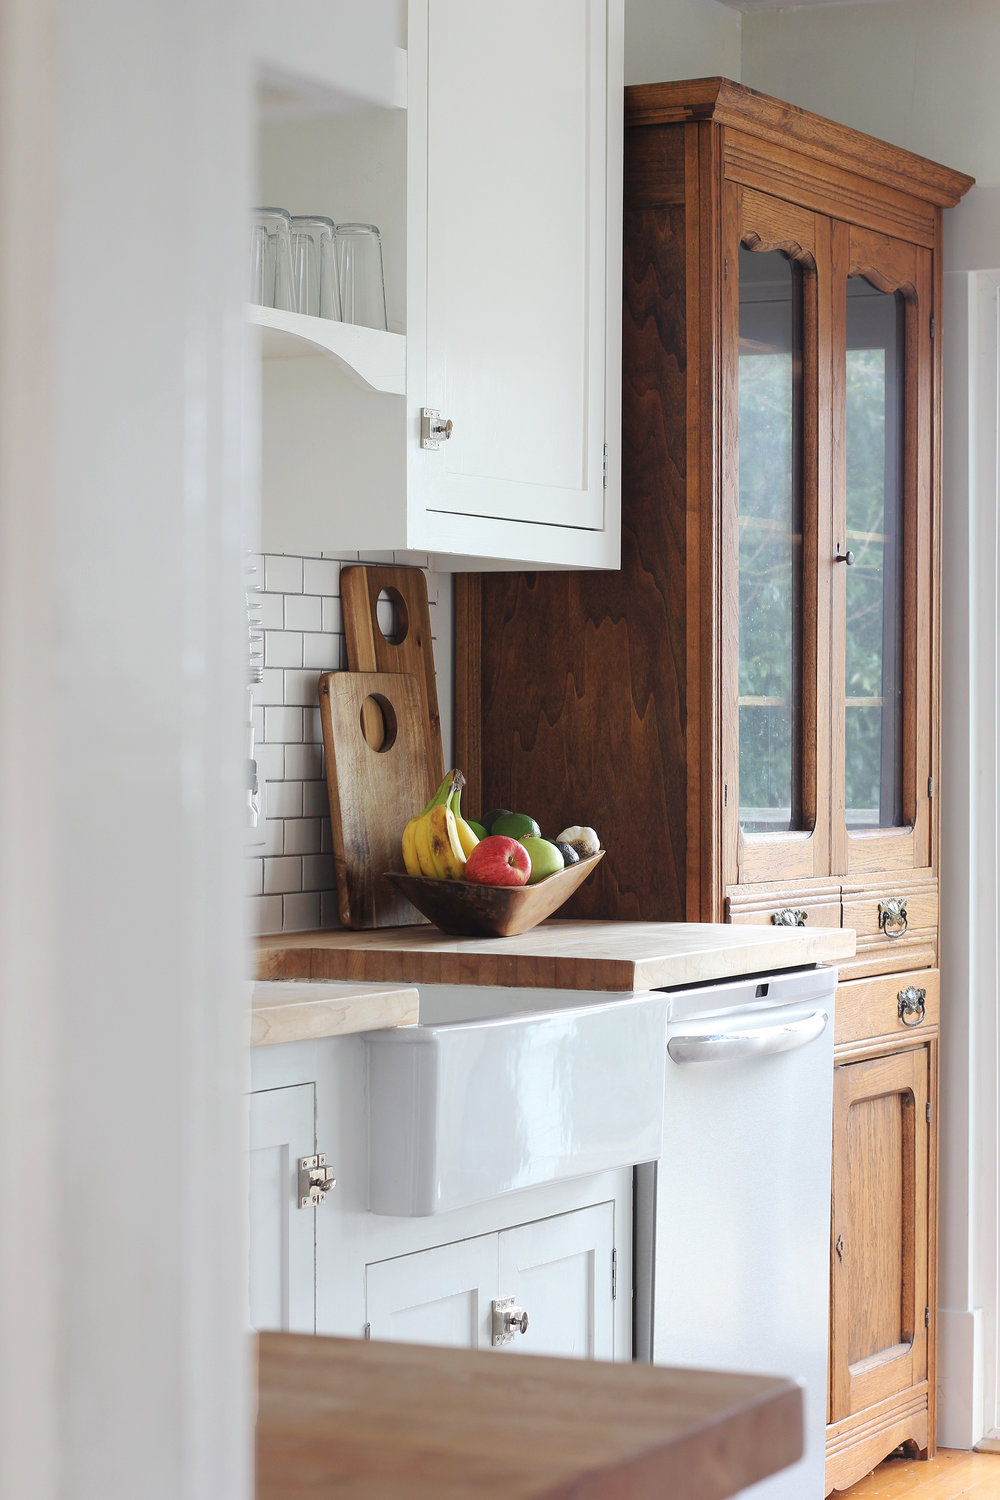 The Grit and Polish - Bryant Kitchen from Door fruit angle.jpg